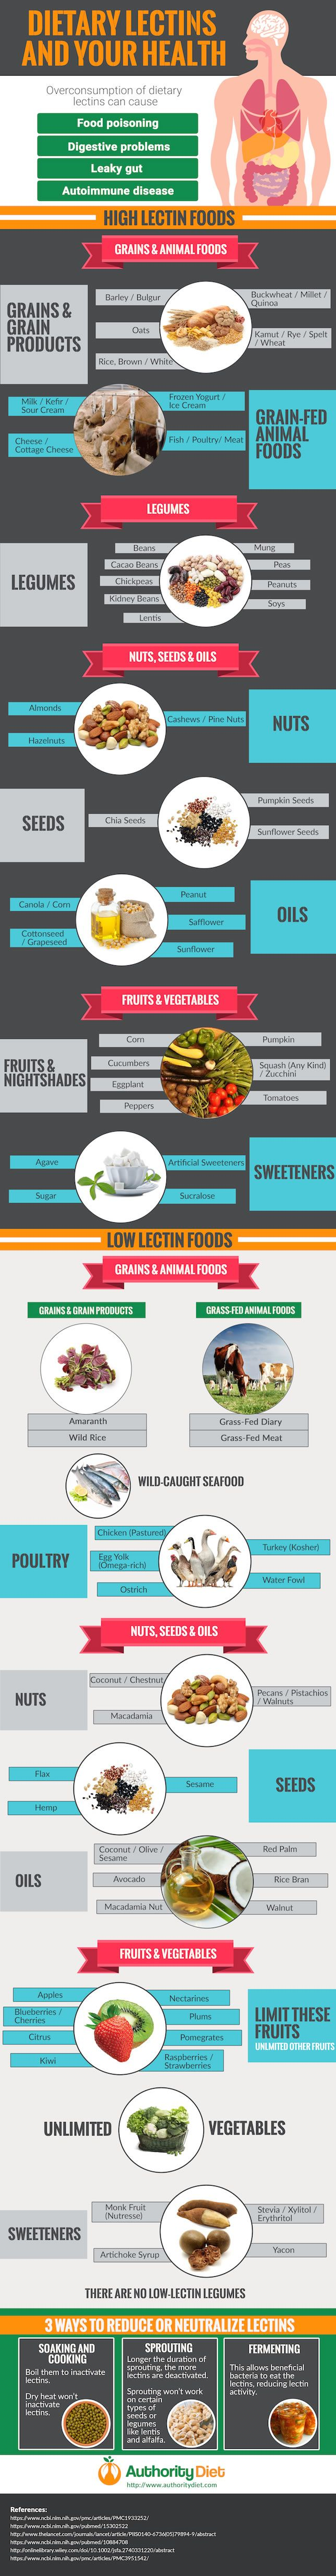 Lectin Avoidance Diet Lectin Foods to avoid #carbswitch Please Repin